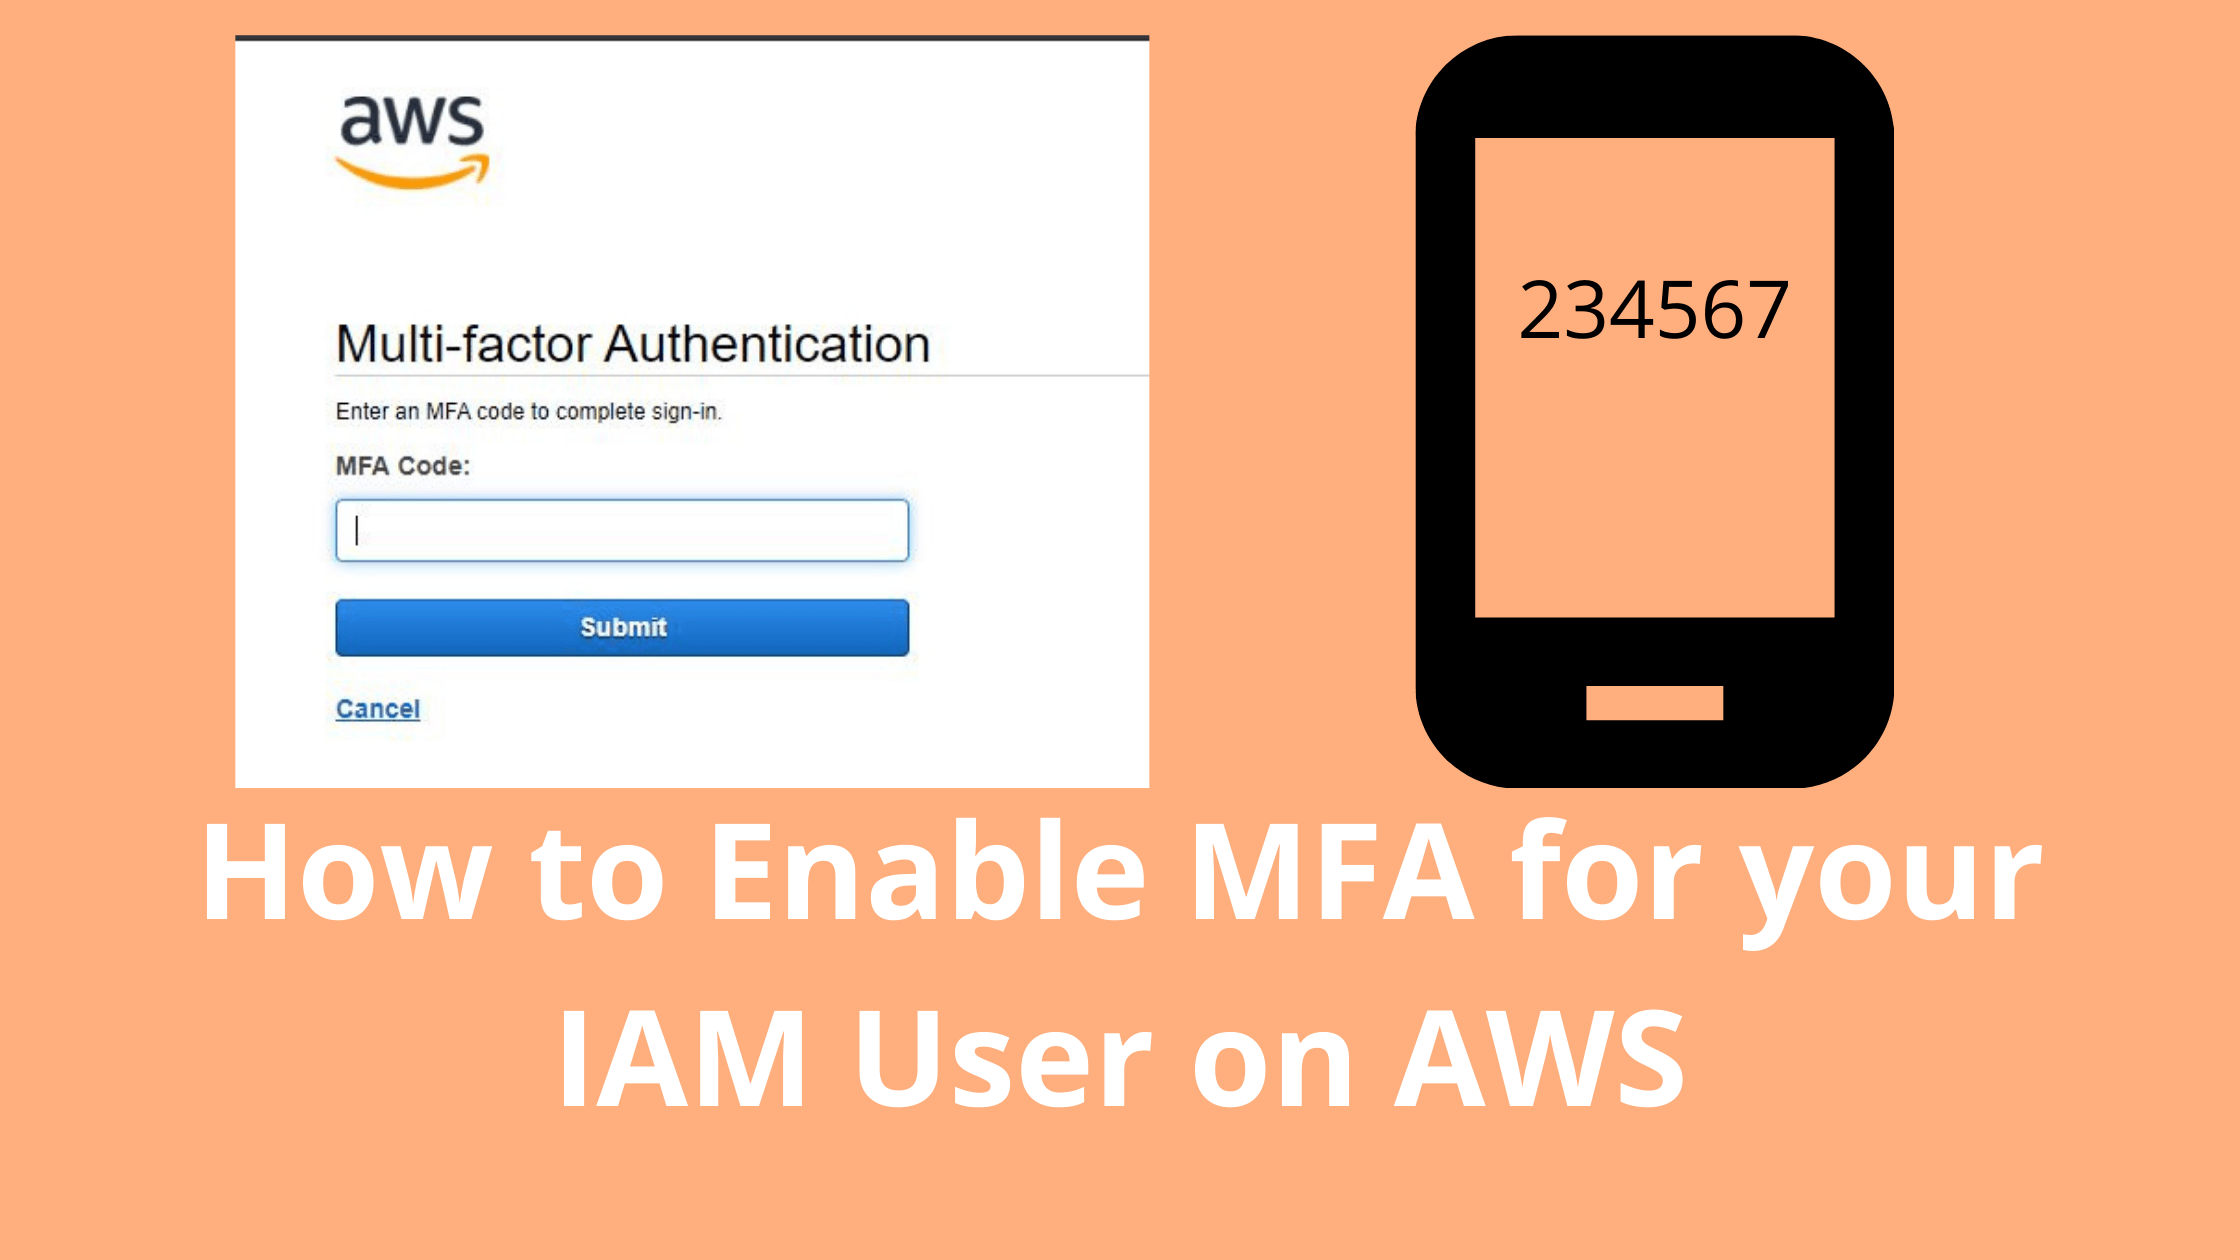 How to Enable MFA for your IAM User on AWS